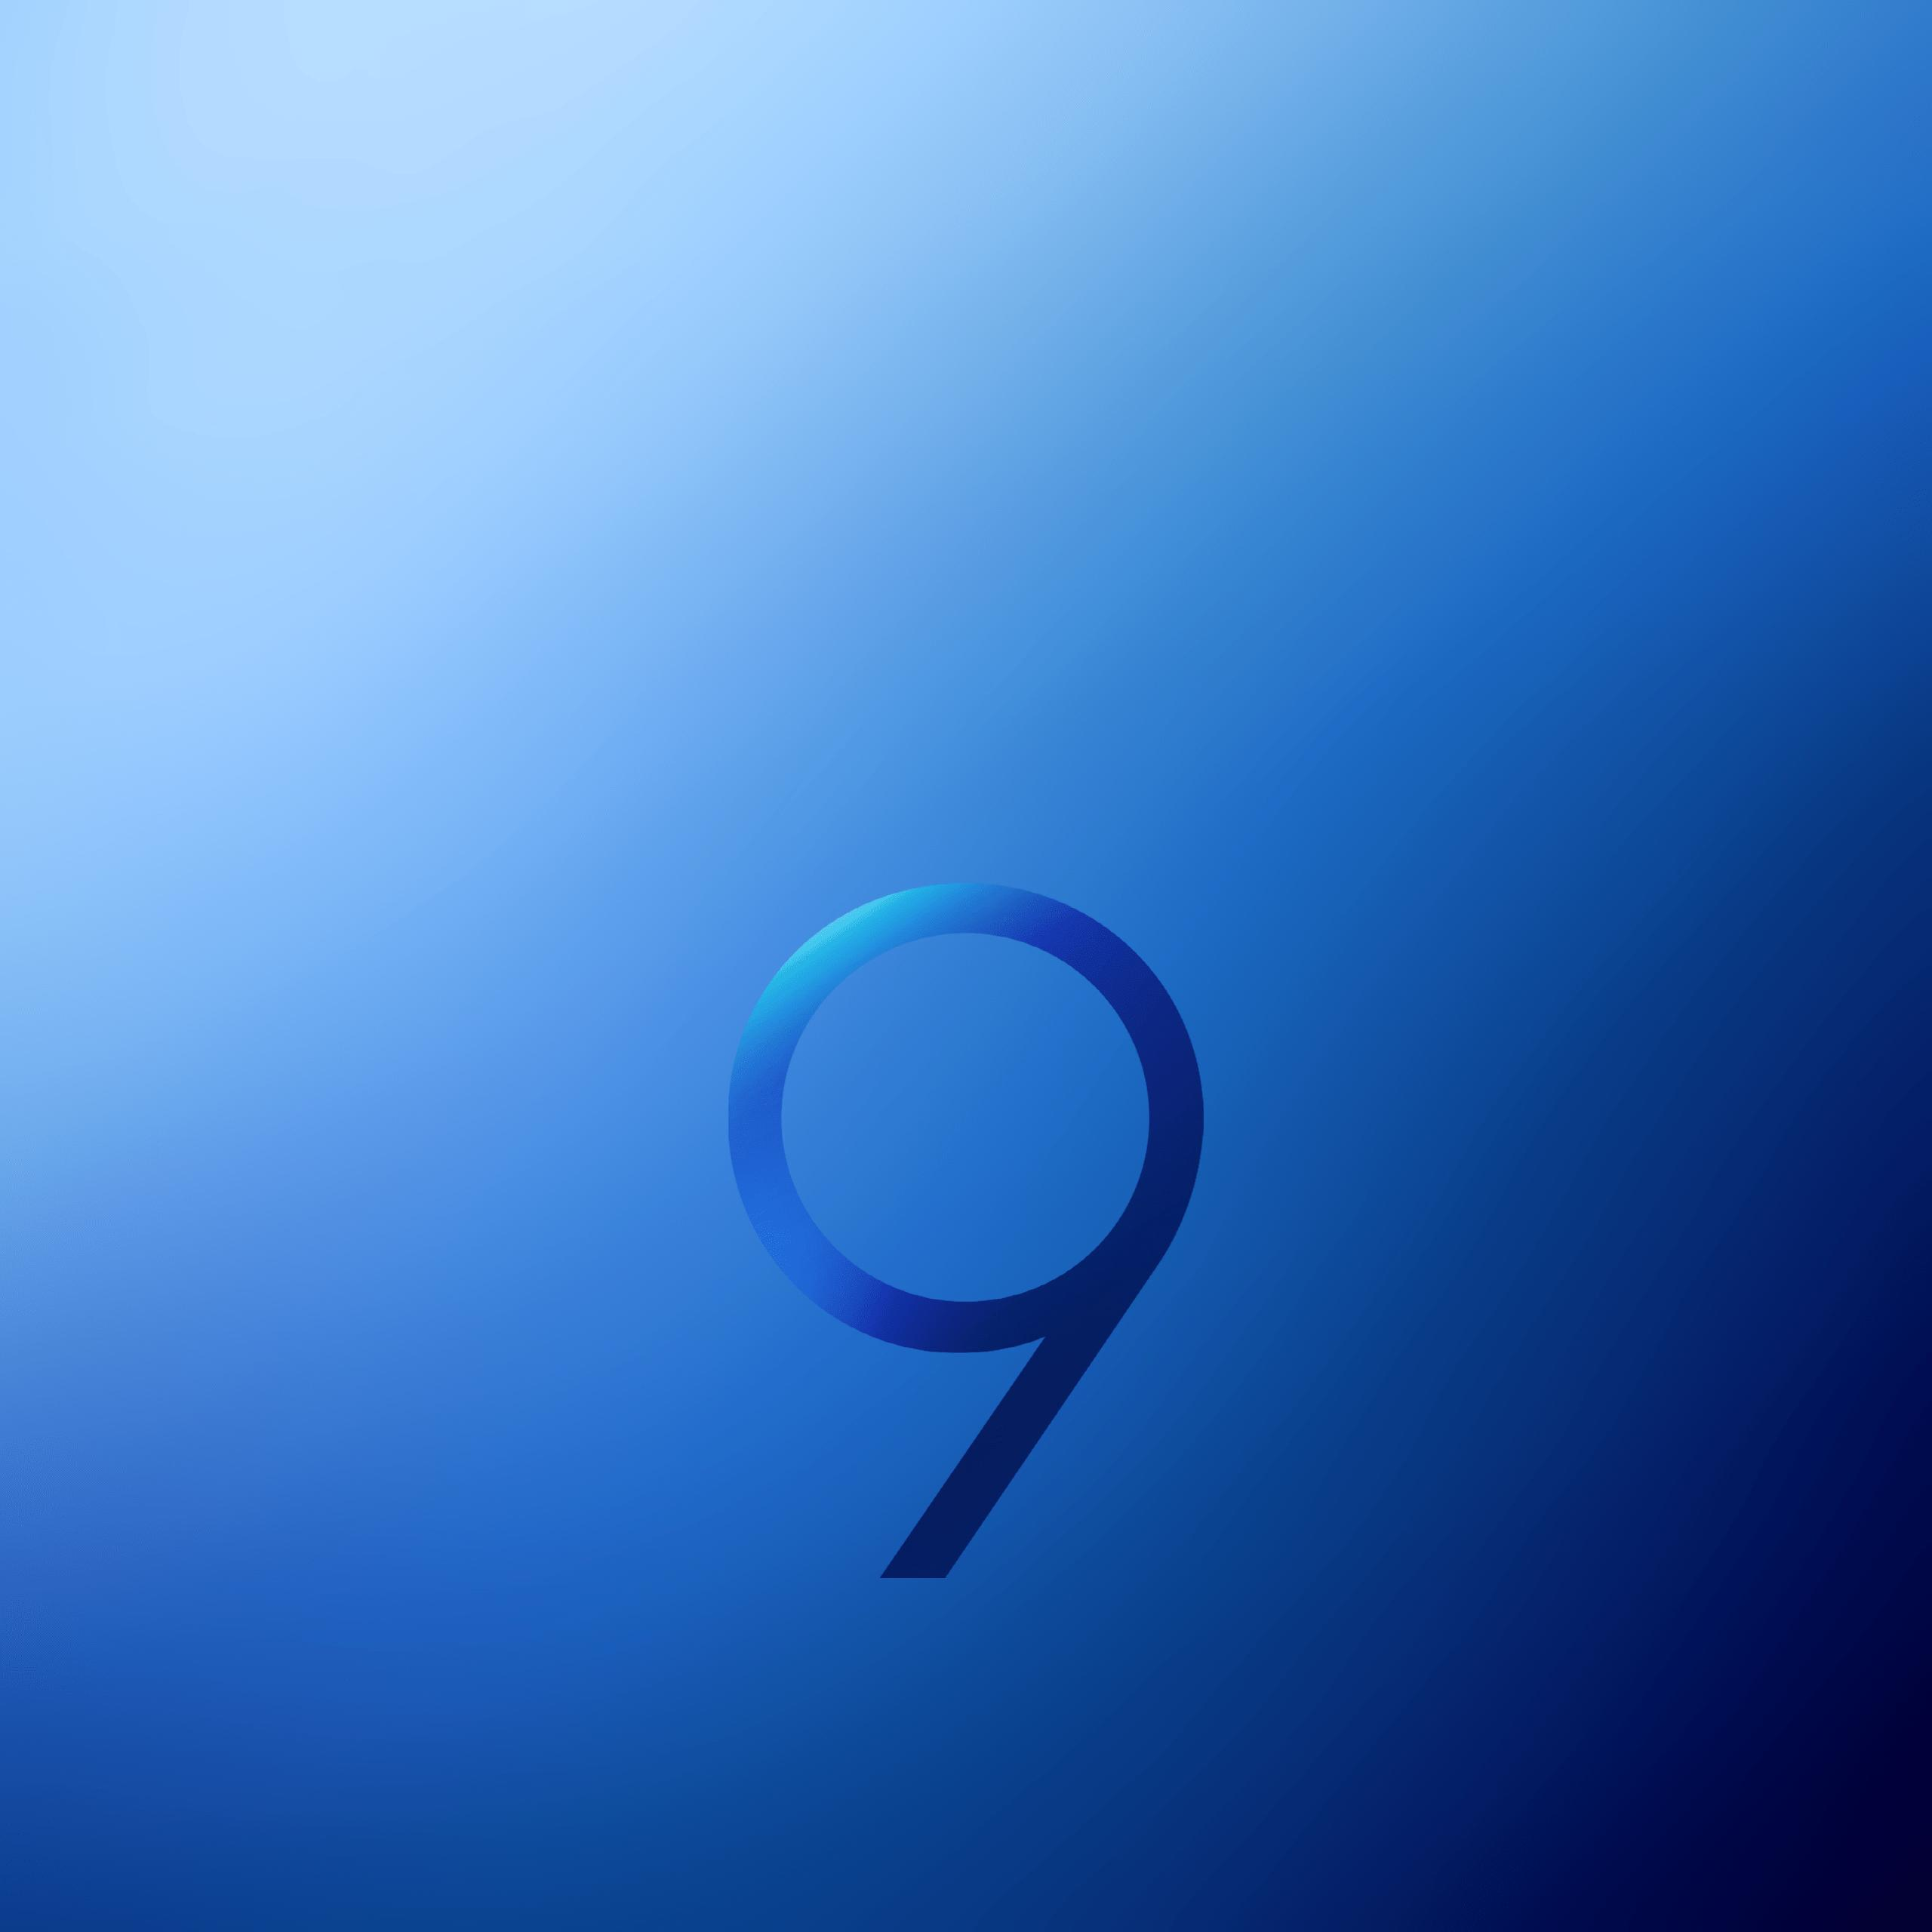 Samsung Galaxy S9 Plus Wallpapers Top Free Samsung Galaxy S9 Plus Backgrounds Wallpaperaccess